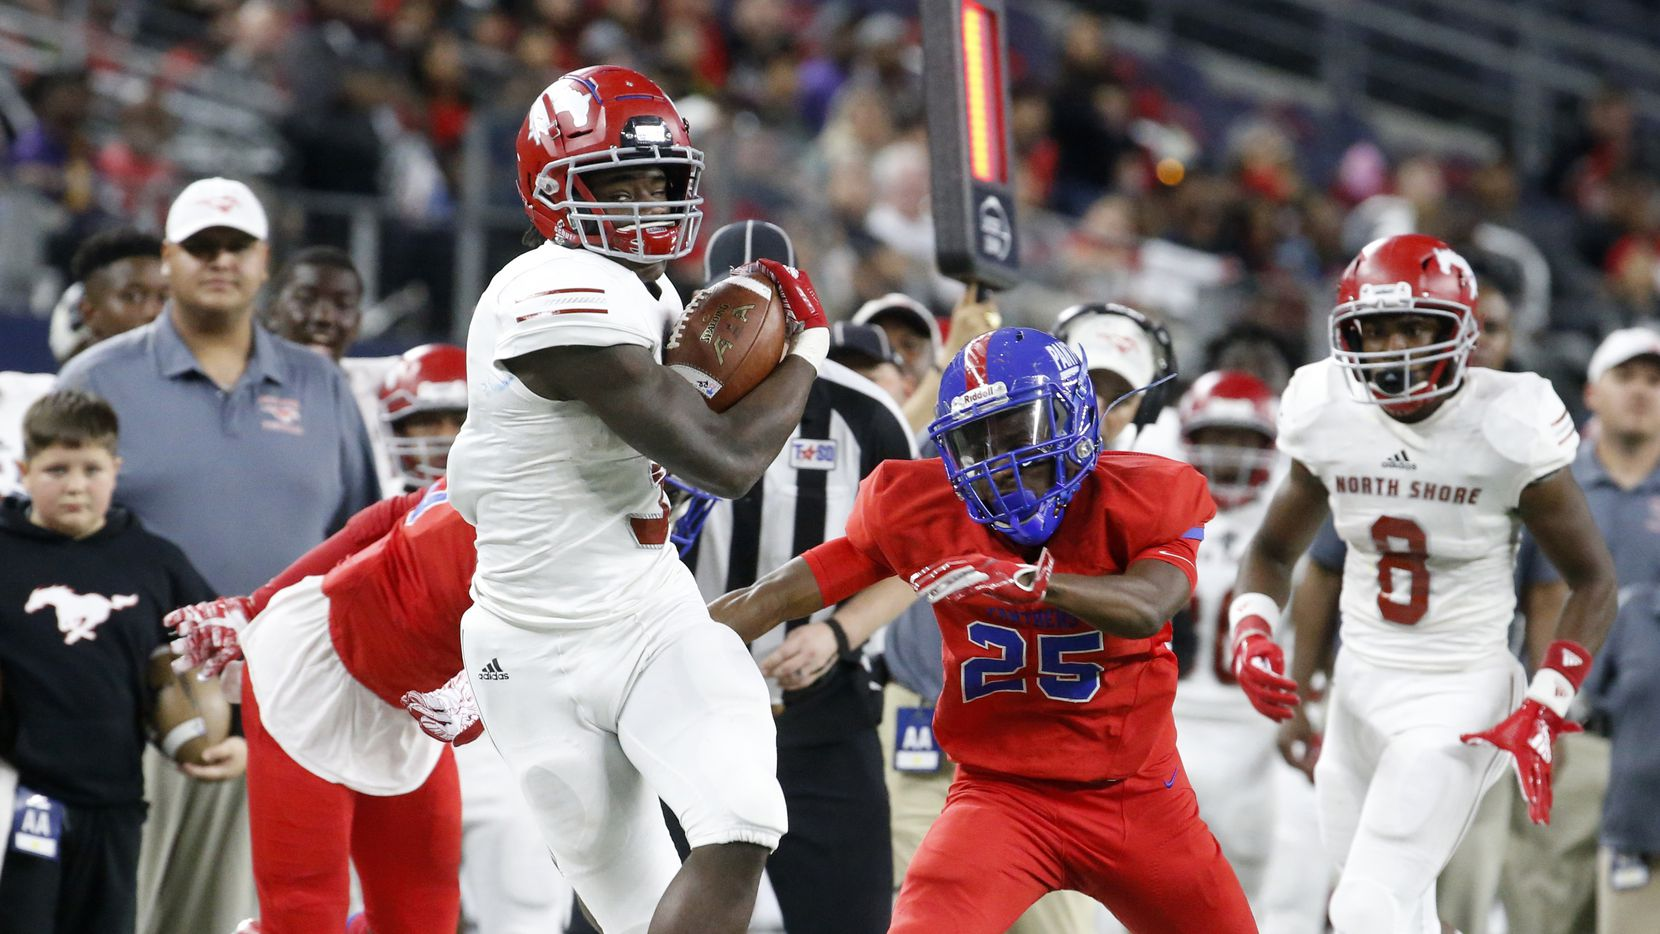 Galena Park North Shore's running back Zach Evans (3) runs past Duncanville's Thailan Scott (25) in the first half of their Class 6A Division I football state championship game at AT&T Stadium in Arlington, Texas on Dec 22, 2018.   (Nathan Hunsinger/The Dallas Morning News)